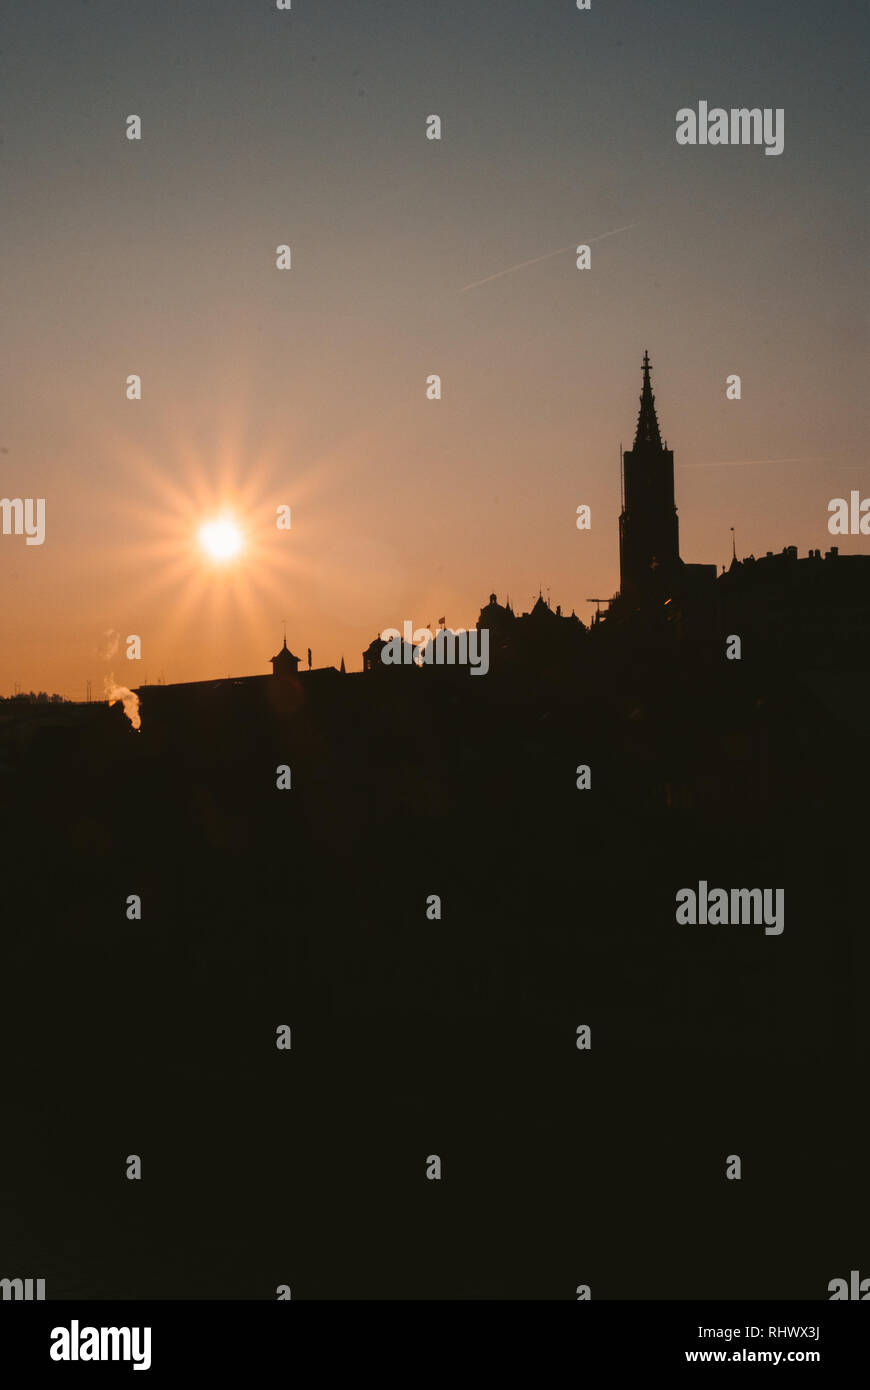 Silhouette of Berner Münster and the Oldtown of Bern at Sunset - Stock Image